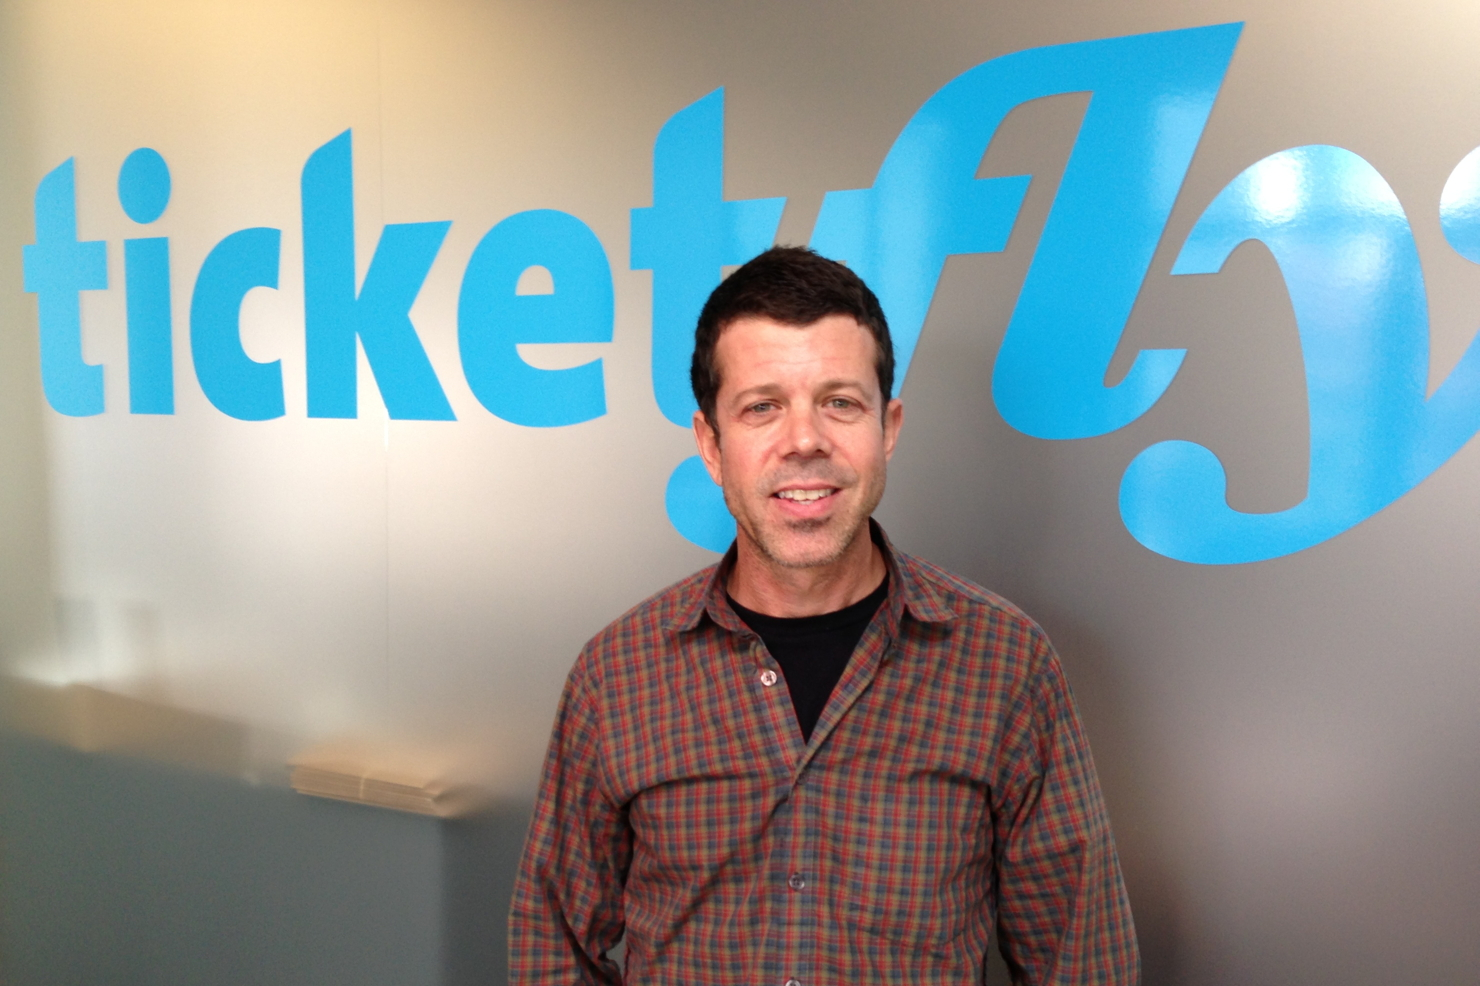 Andrew Dreskin, co-founder and CEO of Ticketfly